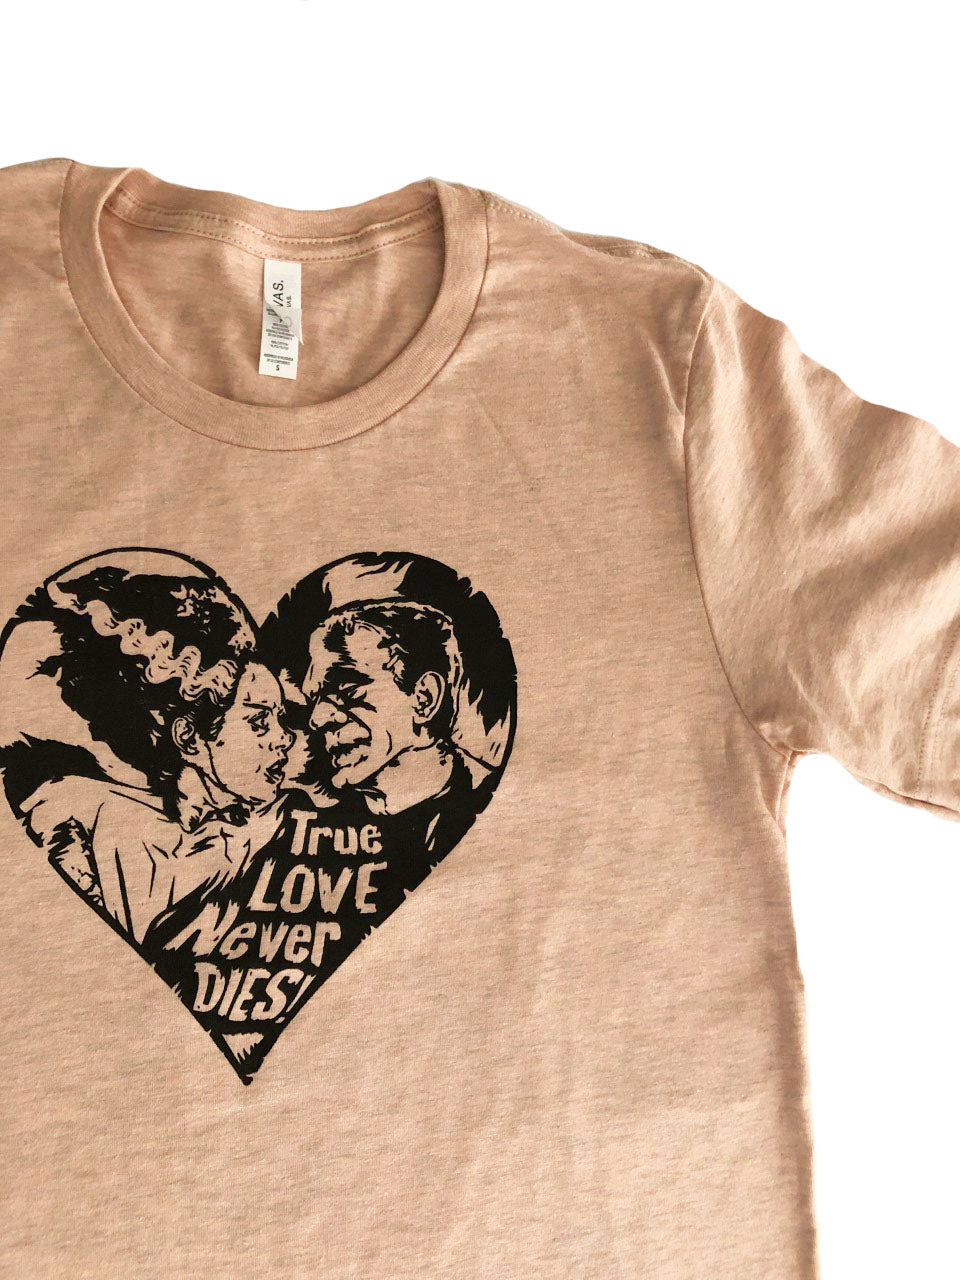 True Love Never Dies (adult sizes) peach tshirts